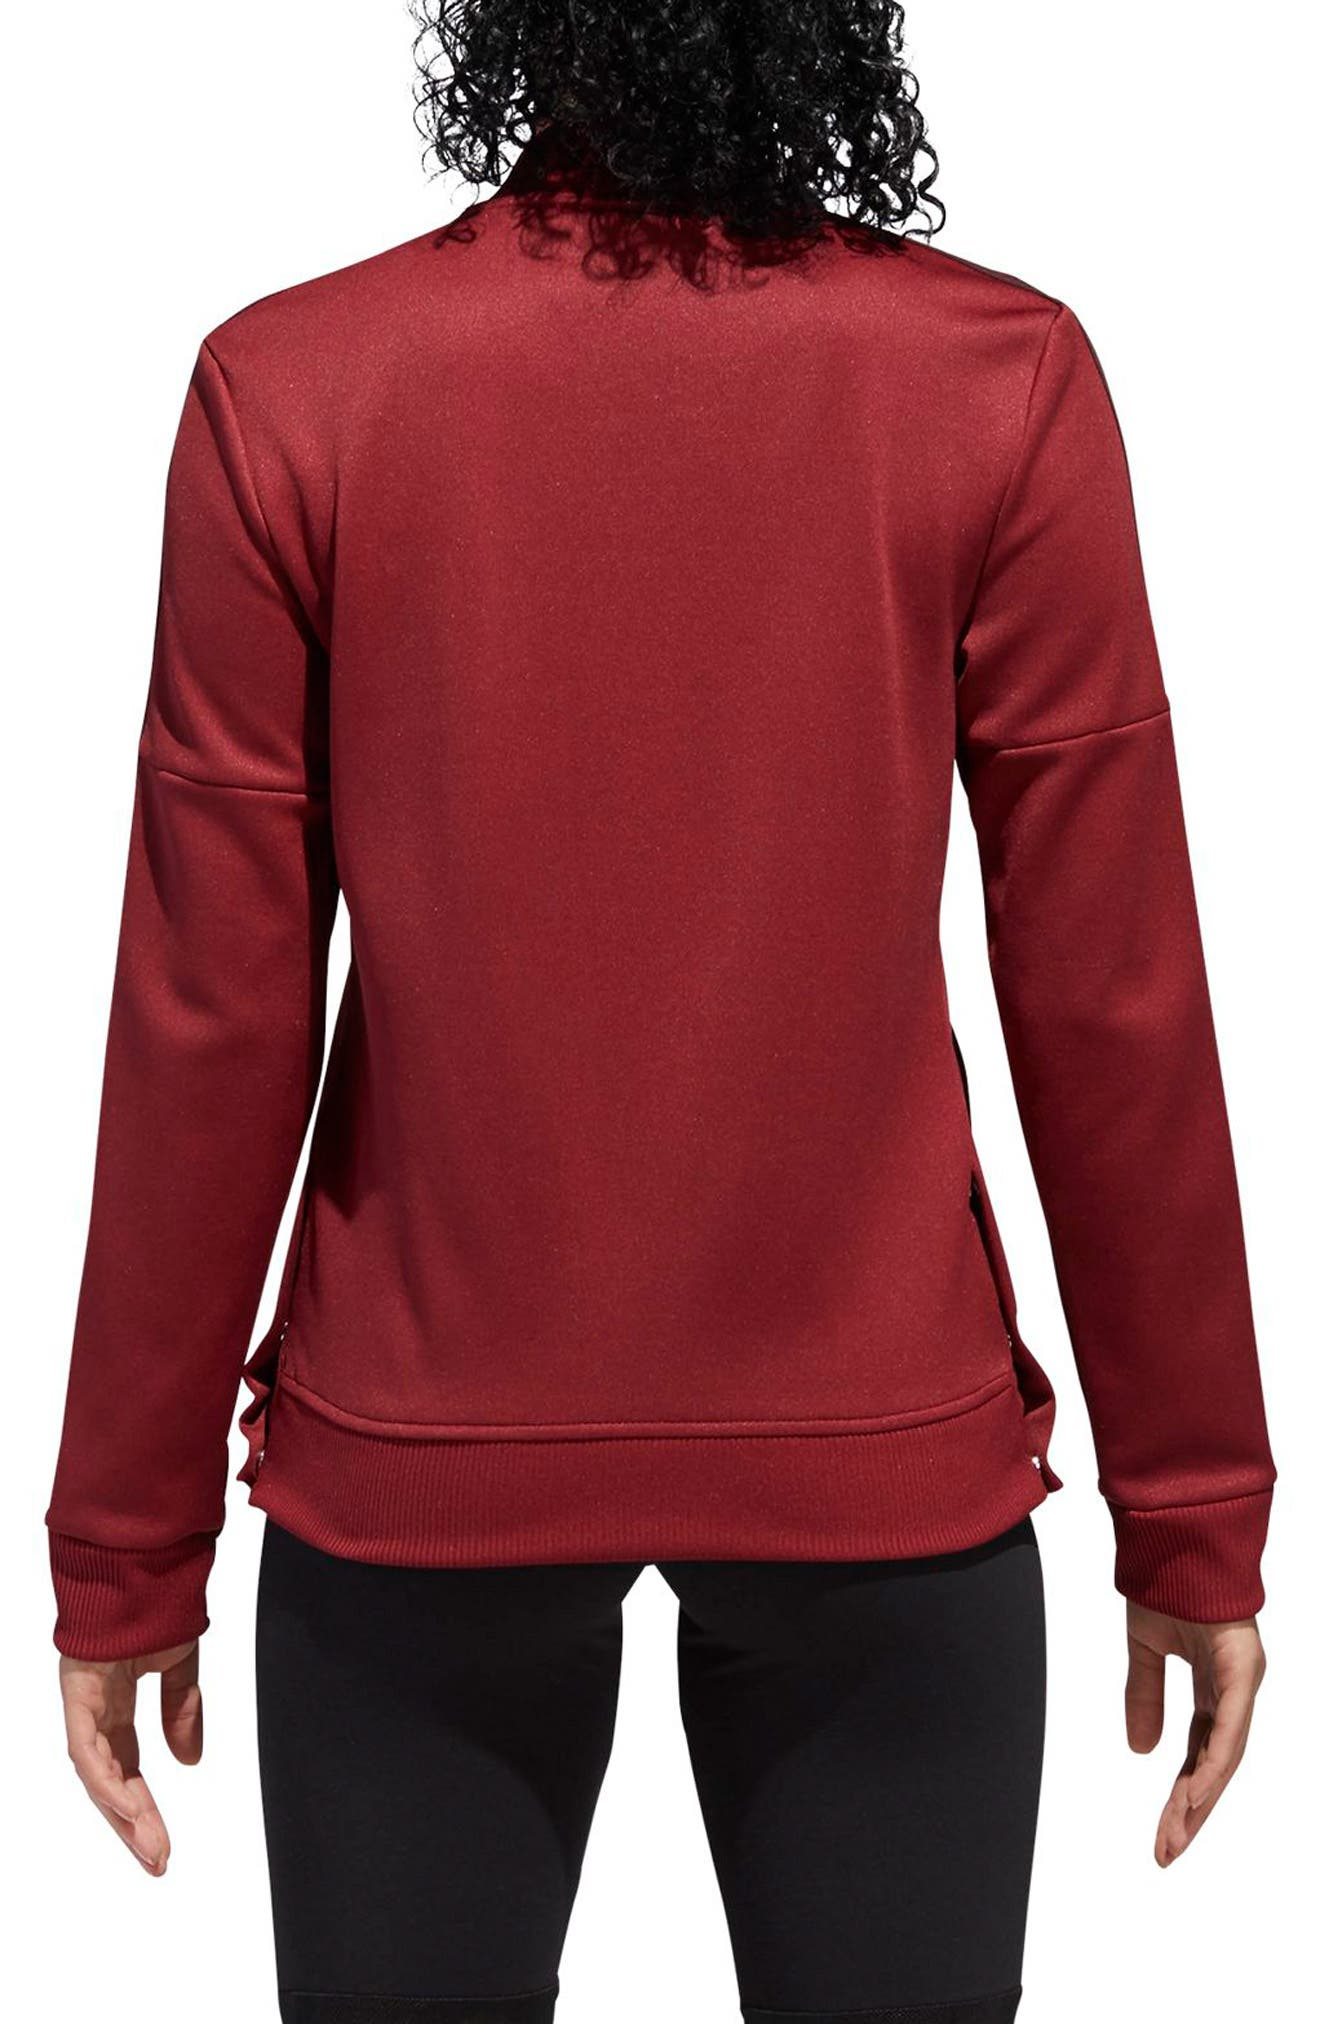 Snap Hem Track Jacket,                             Alternate thumbnail 2, color,                             NOBLE MAROON/ NIGHT RED